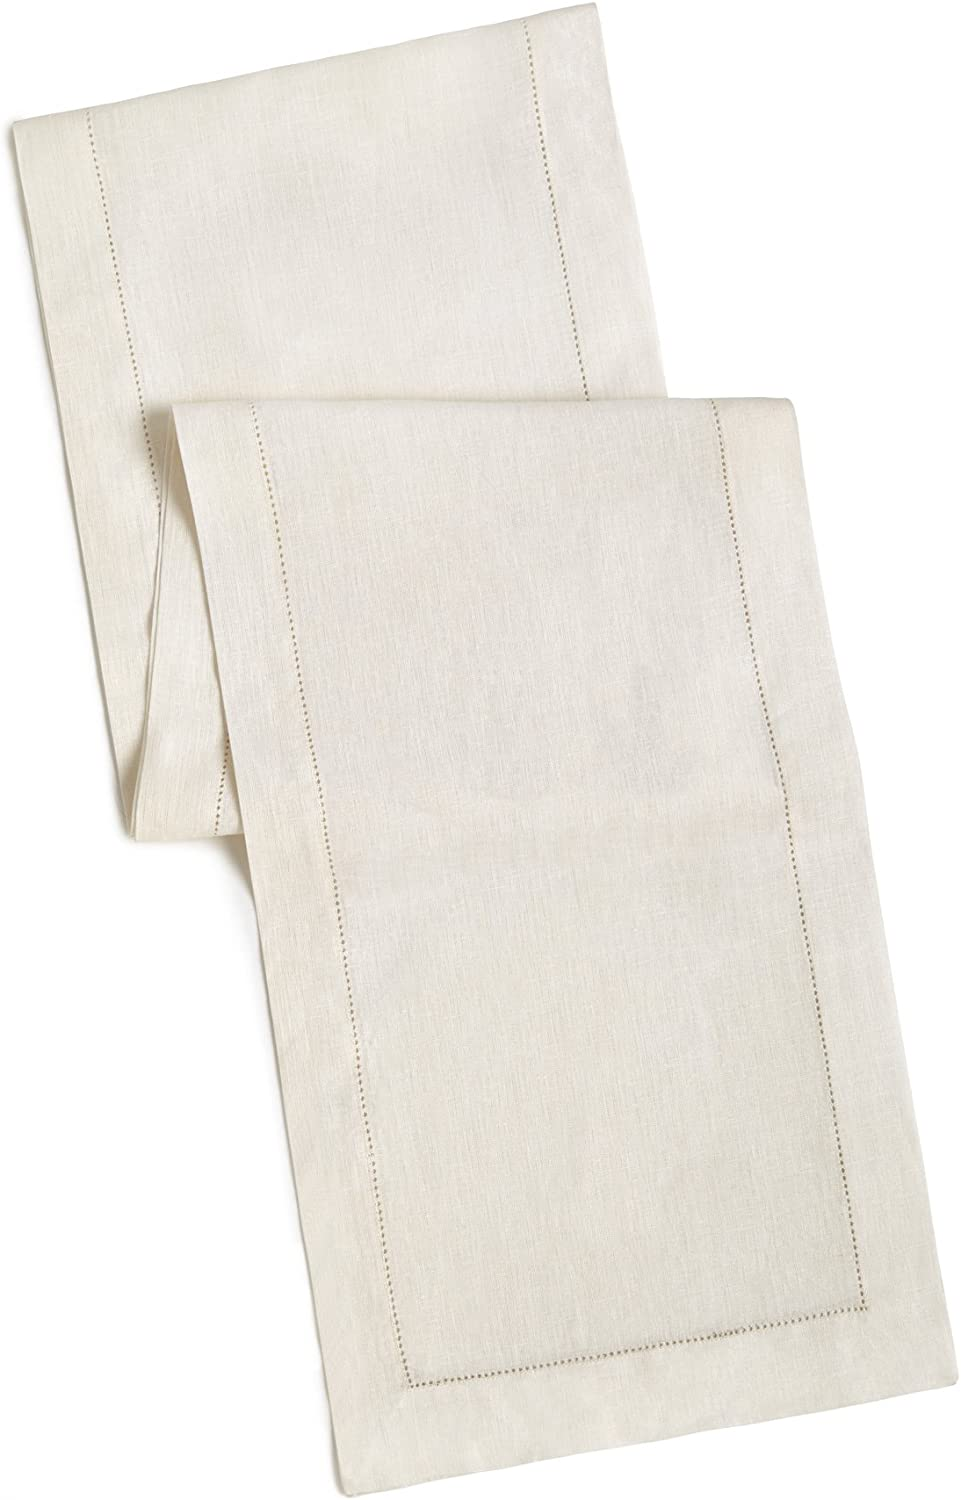 100 Linen Hemstitch Table Runner Size 16x108 Ivory Hand Crafted And Hand Stitched Table Runner With Hemstitch Detailing The Pure Linen Fabric Works Well In Both Casual And Formal